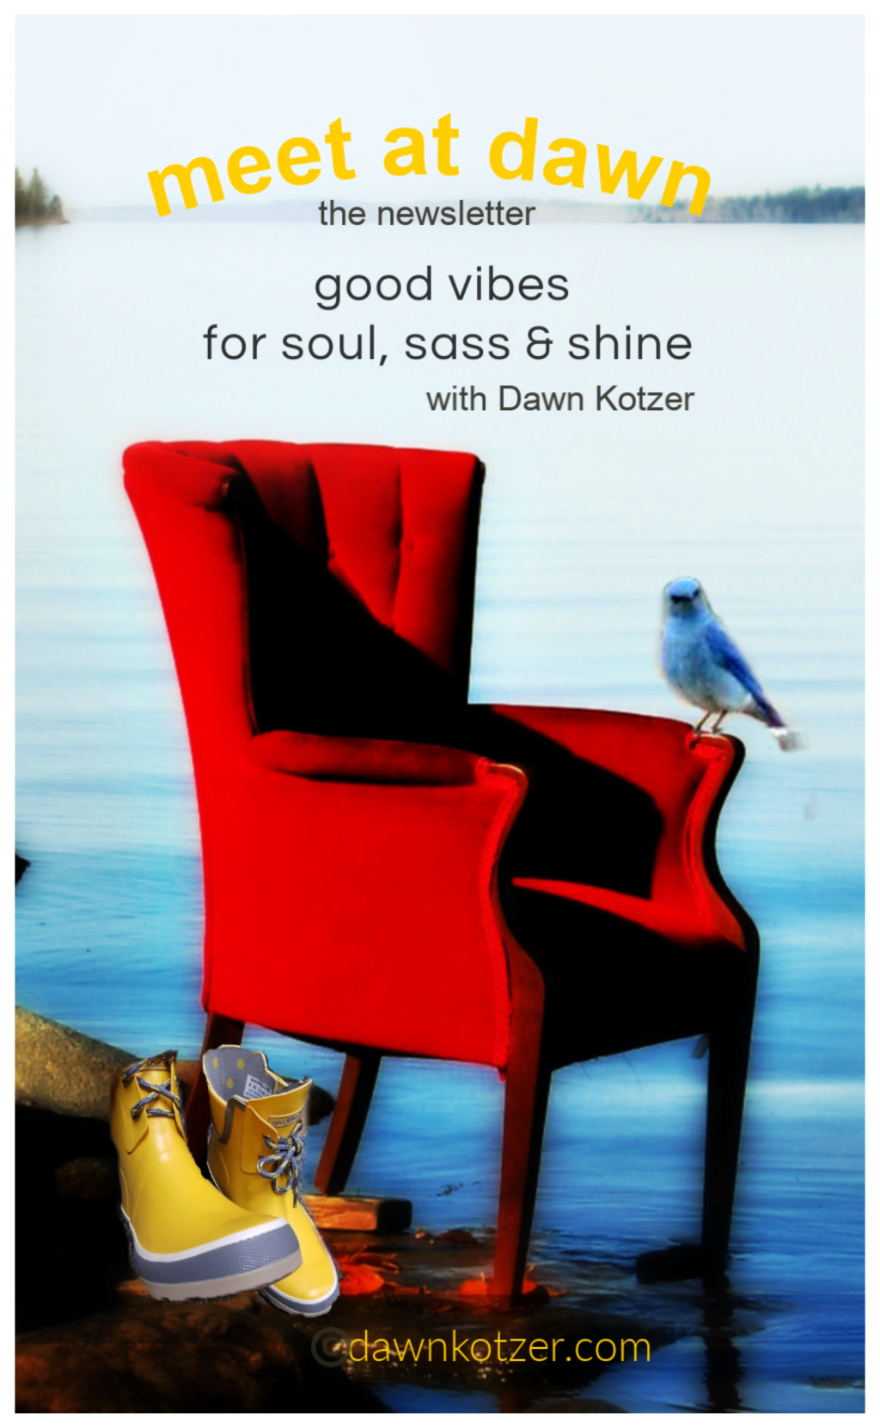 Meet At Dawn — the newsletter, good vibes with soul, sass, and shine with Dawn Kotzer. Subscribe.